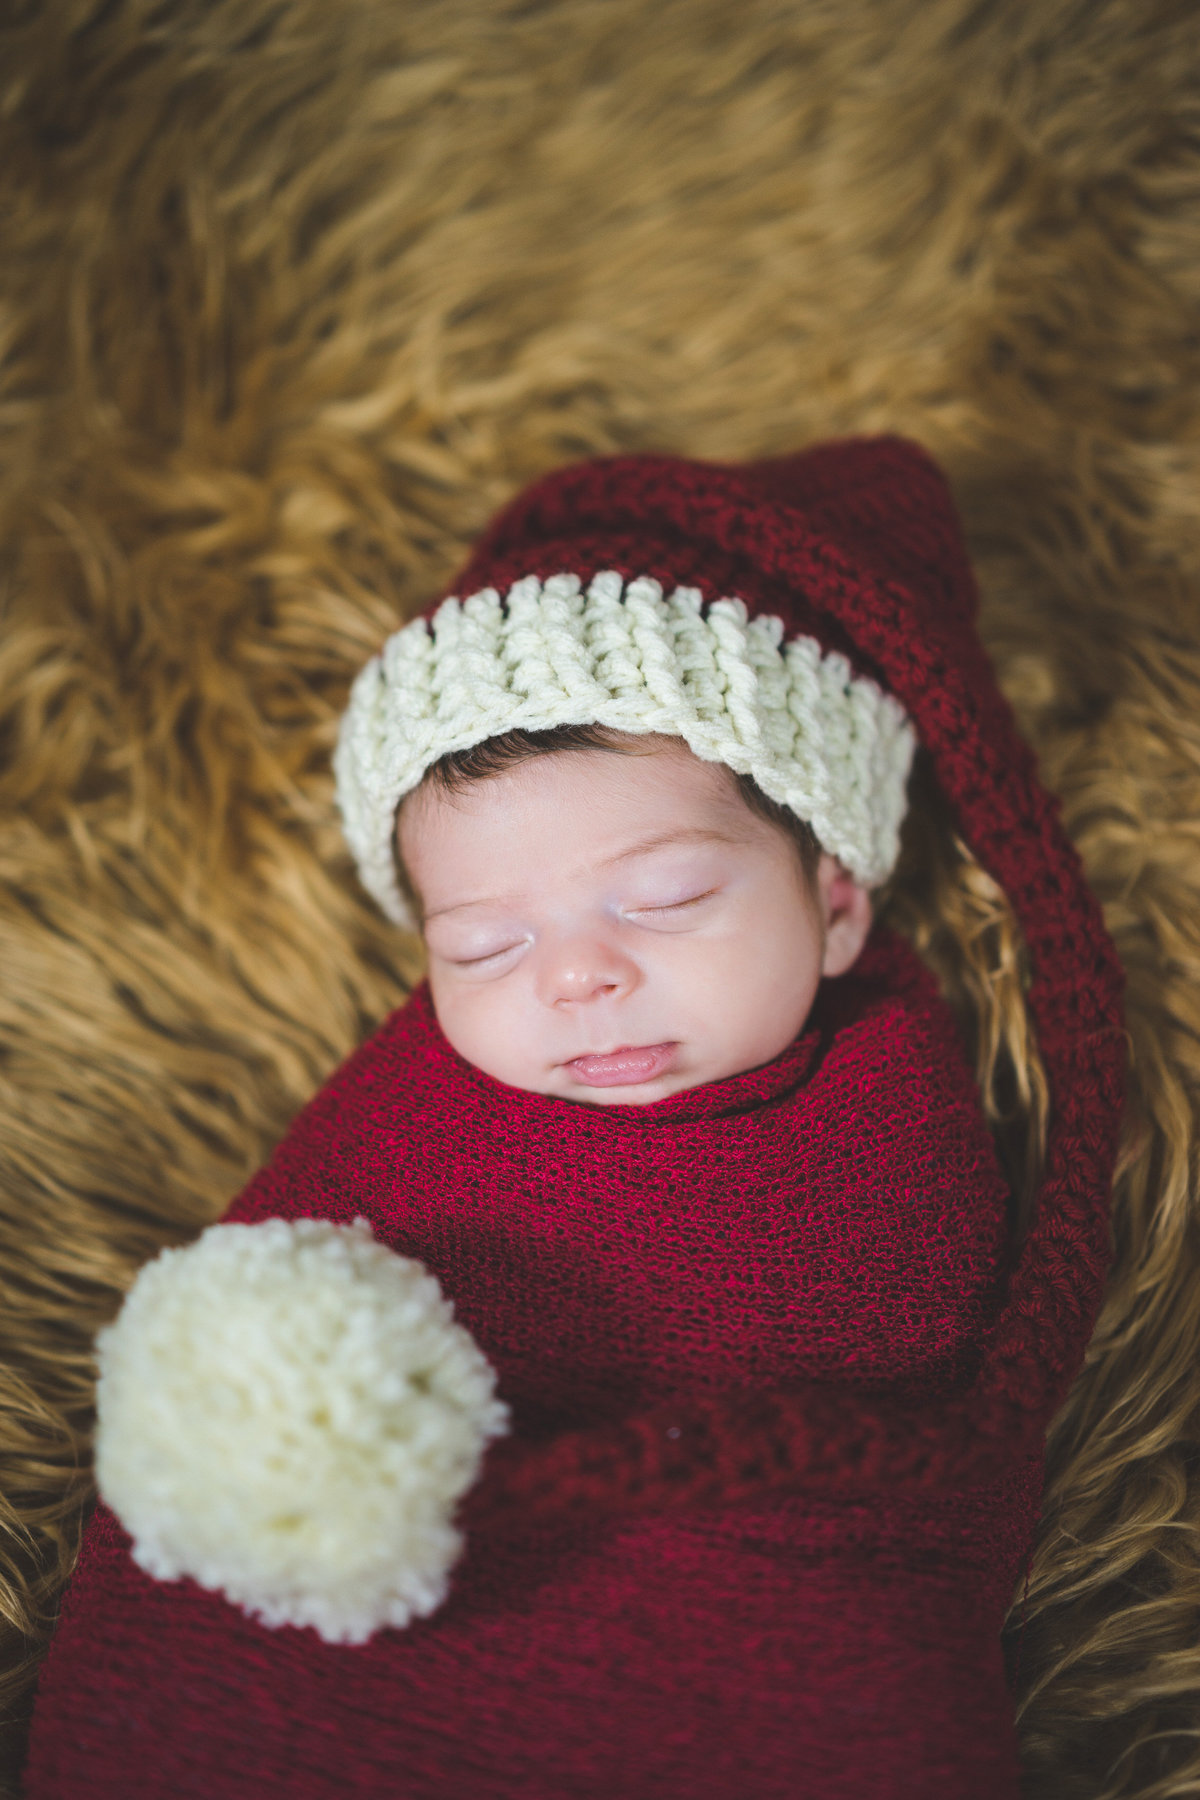 Newborn baby wrapped in red cheesecloth blanket and wearing Santa hat prop in San Antonio Photography studio.